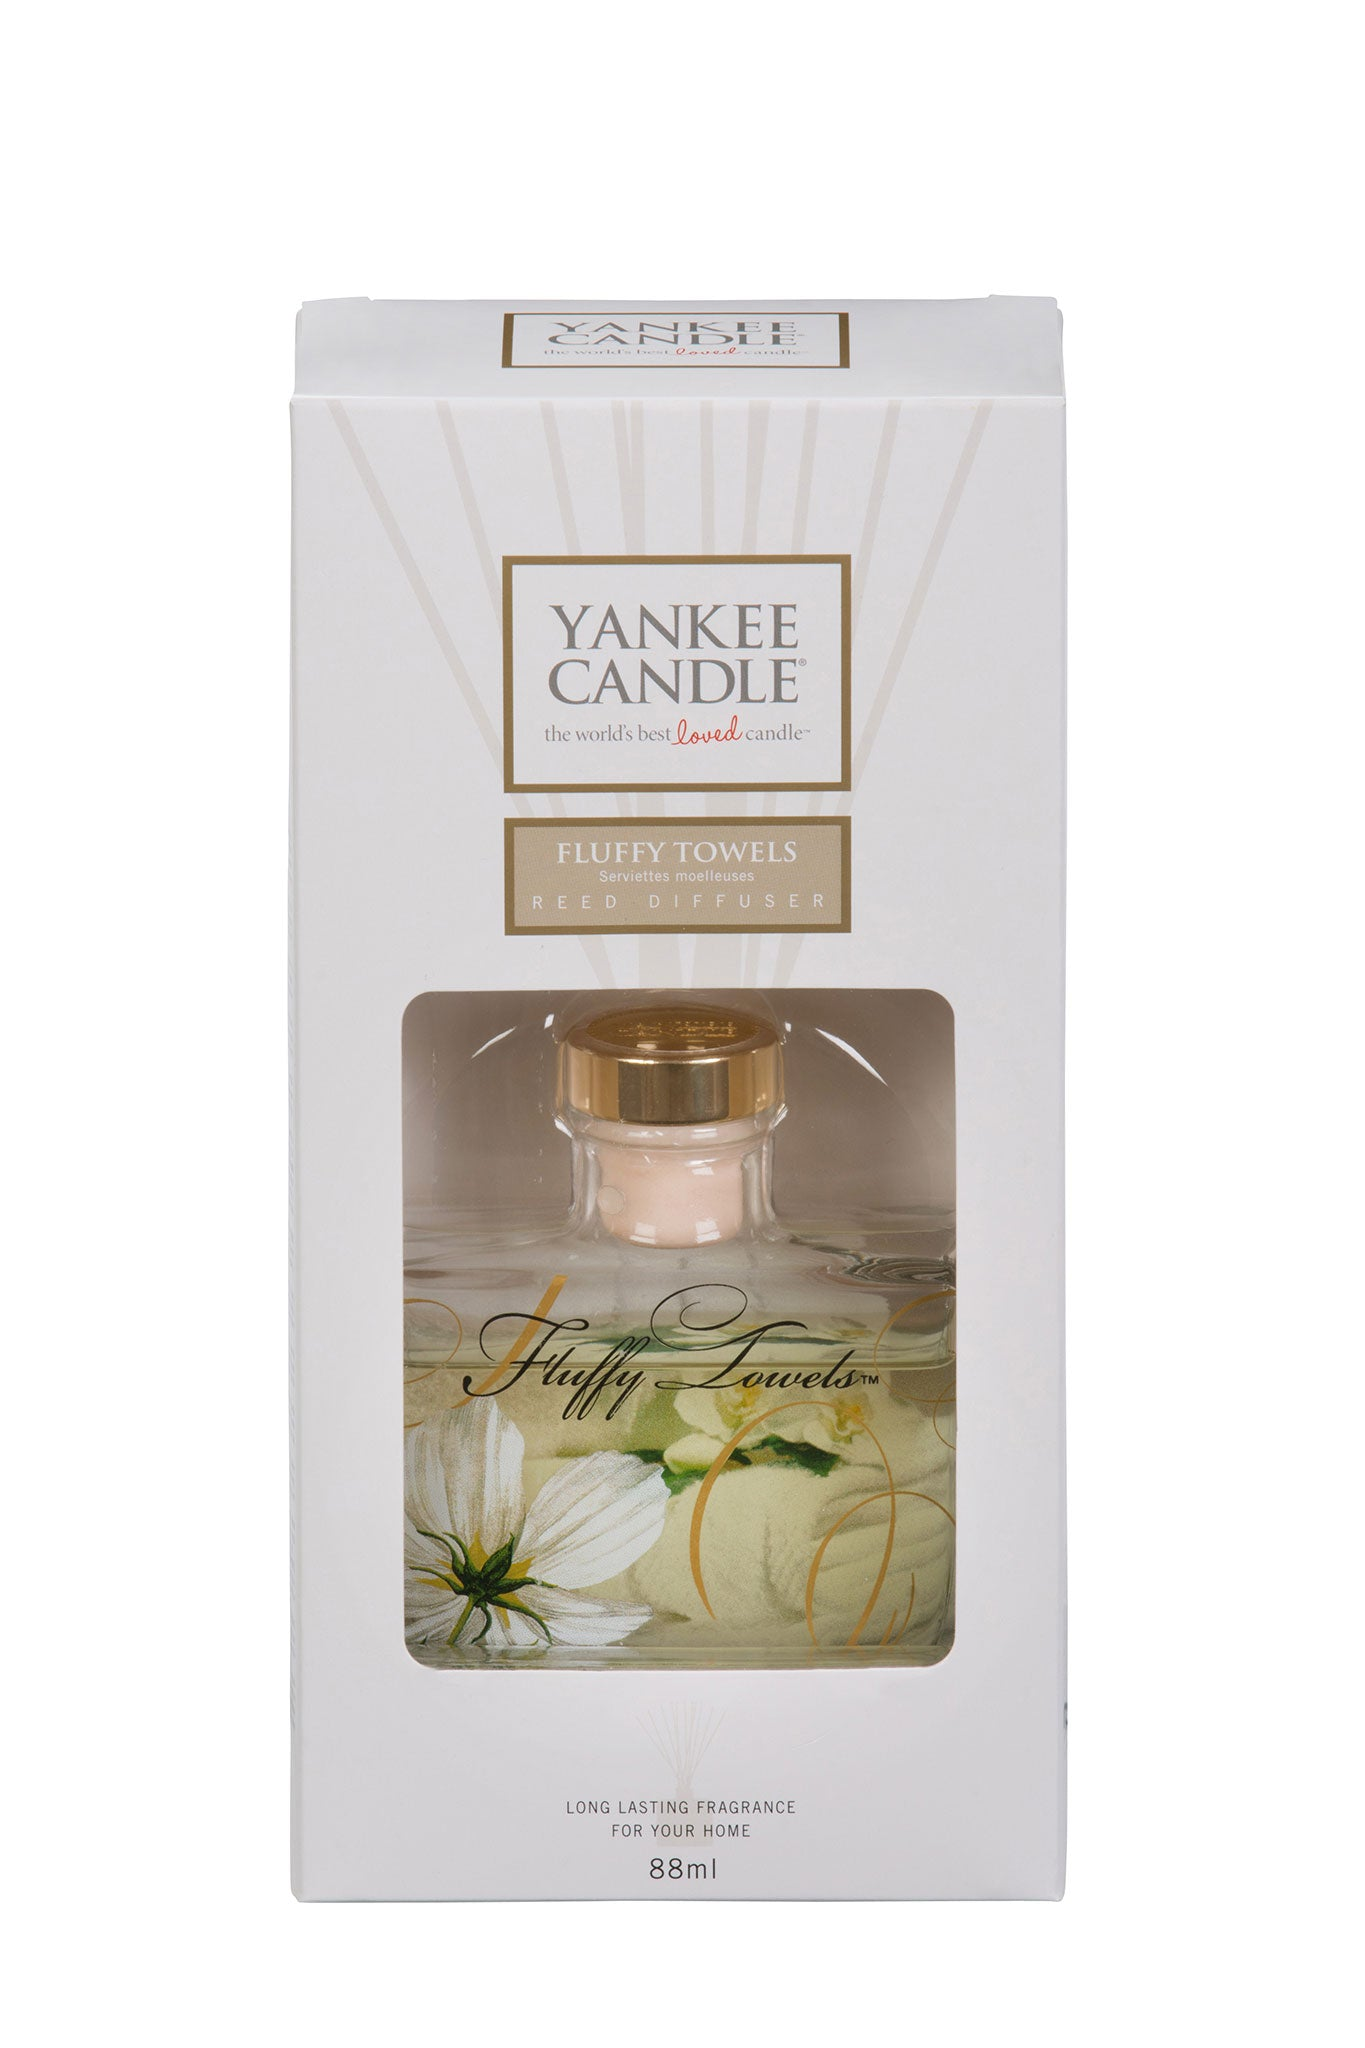 FLUFFY TOWEL -Yankee Candle- Reed Diffuser